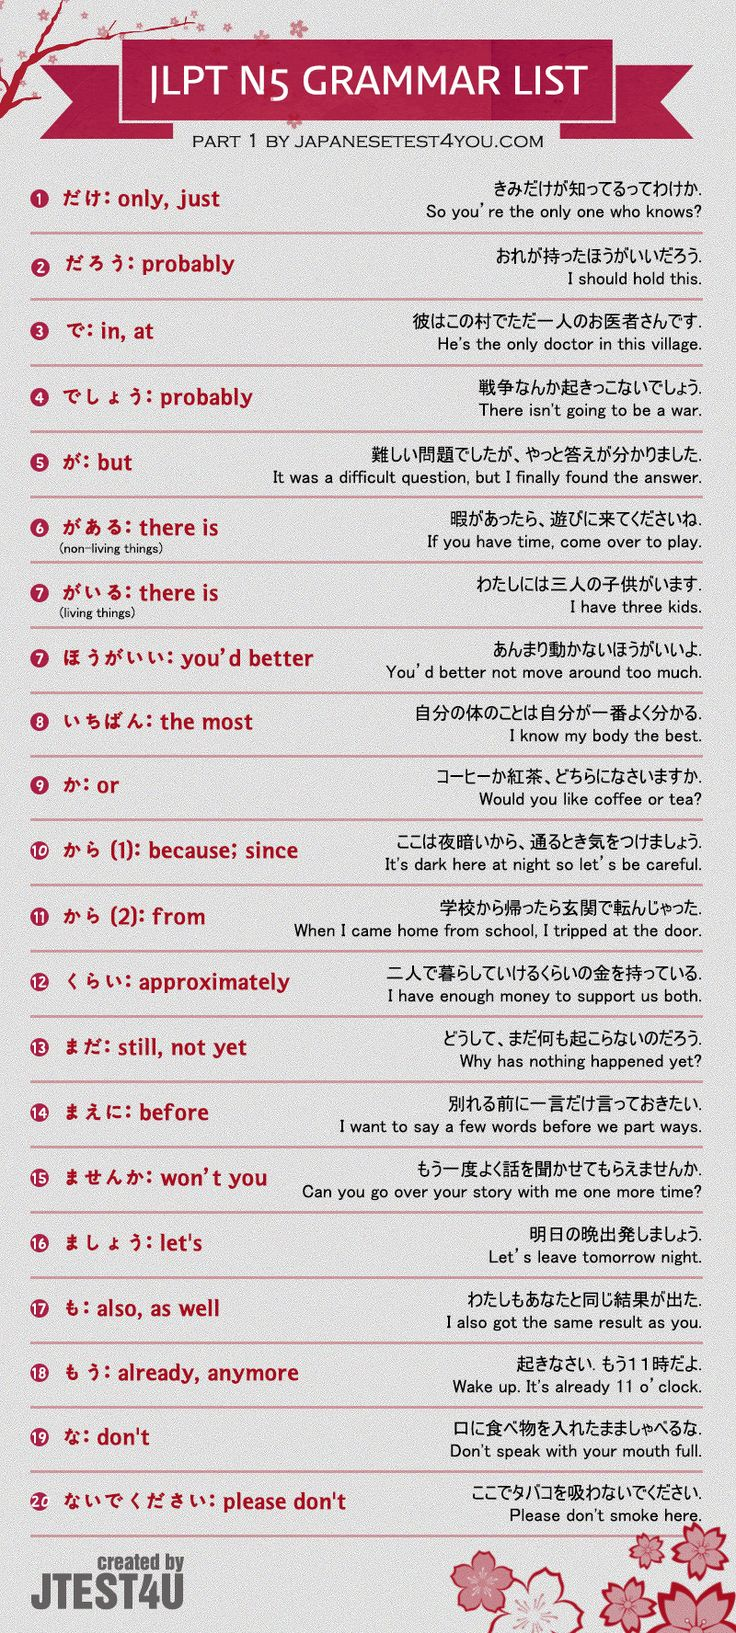 Infographic: JLPT N5 Grammar List Part 1 http://japanesetest4you.com/jlpt-n5-grammar-list/